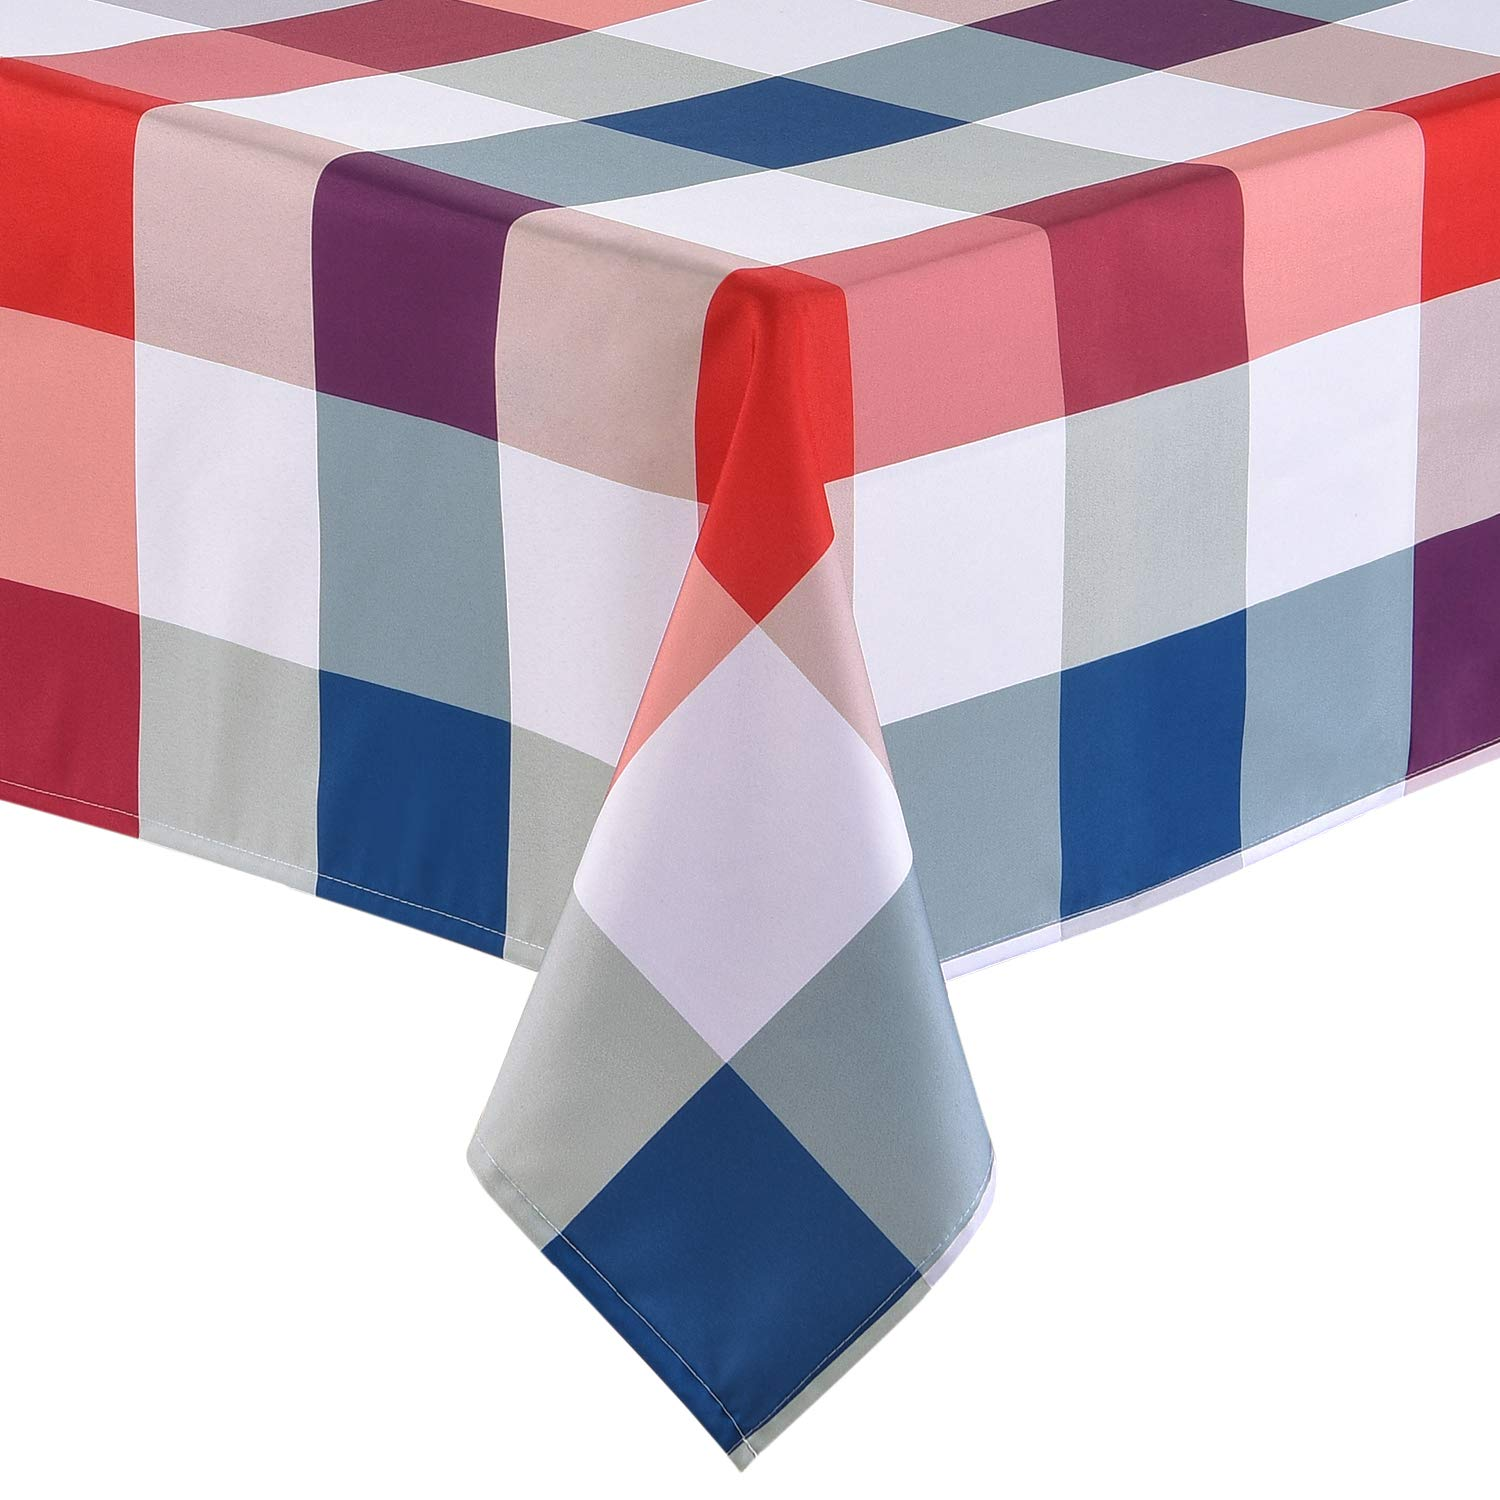 Sunm Boutique Tablecloth Festive Red, White and Blue Heavy Weight Tablecloth Plaid Tablecloth 4th of July Outdoor Tablecloth Decorative Washable Picnic Tablecloth